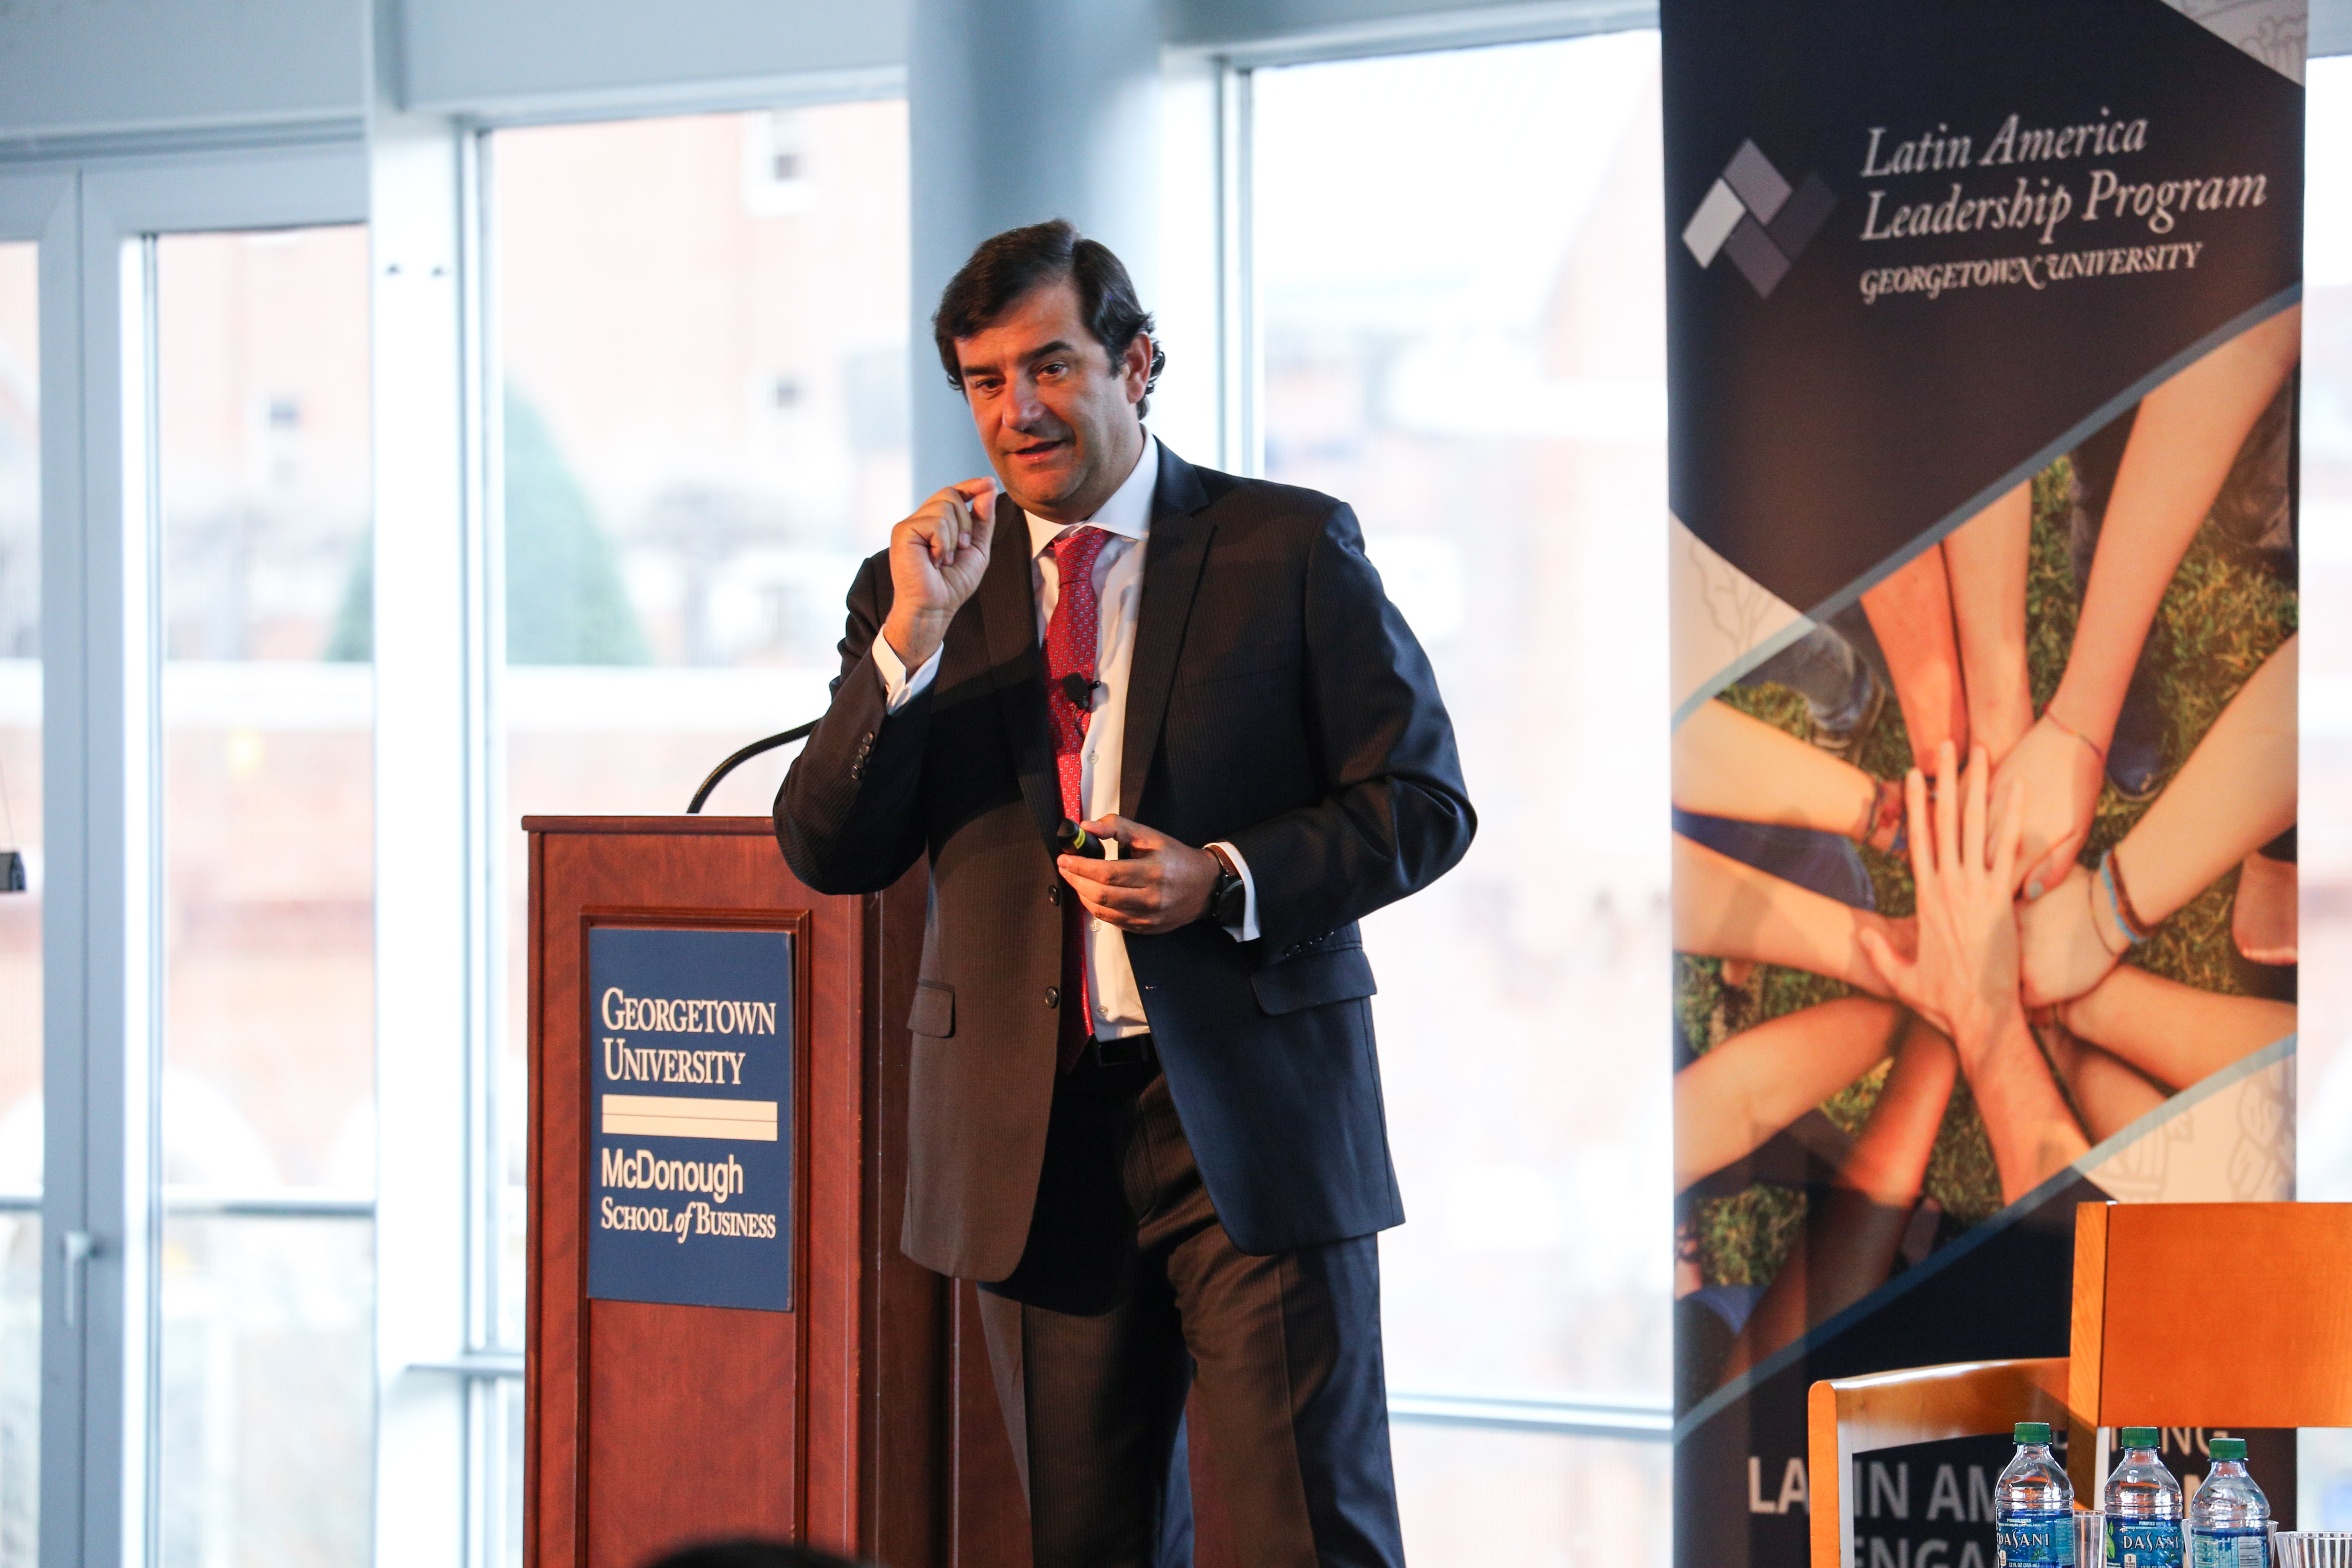 Cesar Cernuda answering questions from the audience